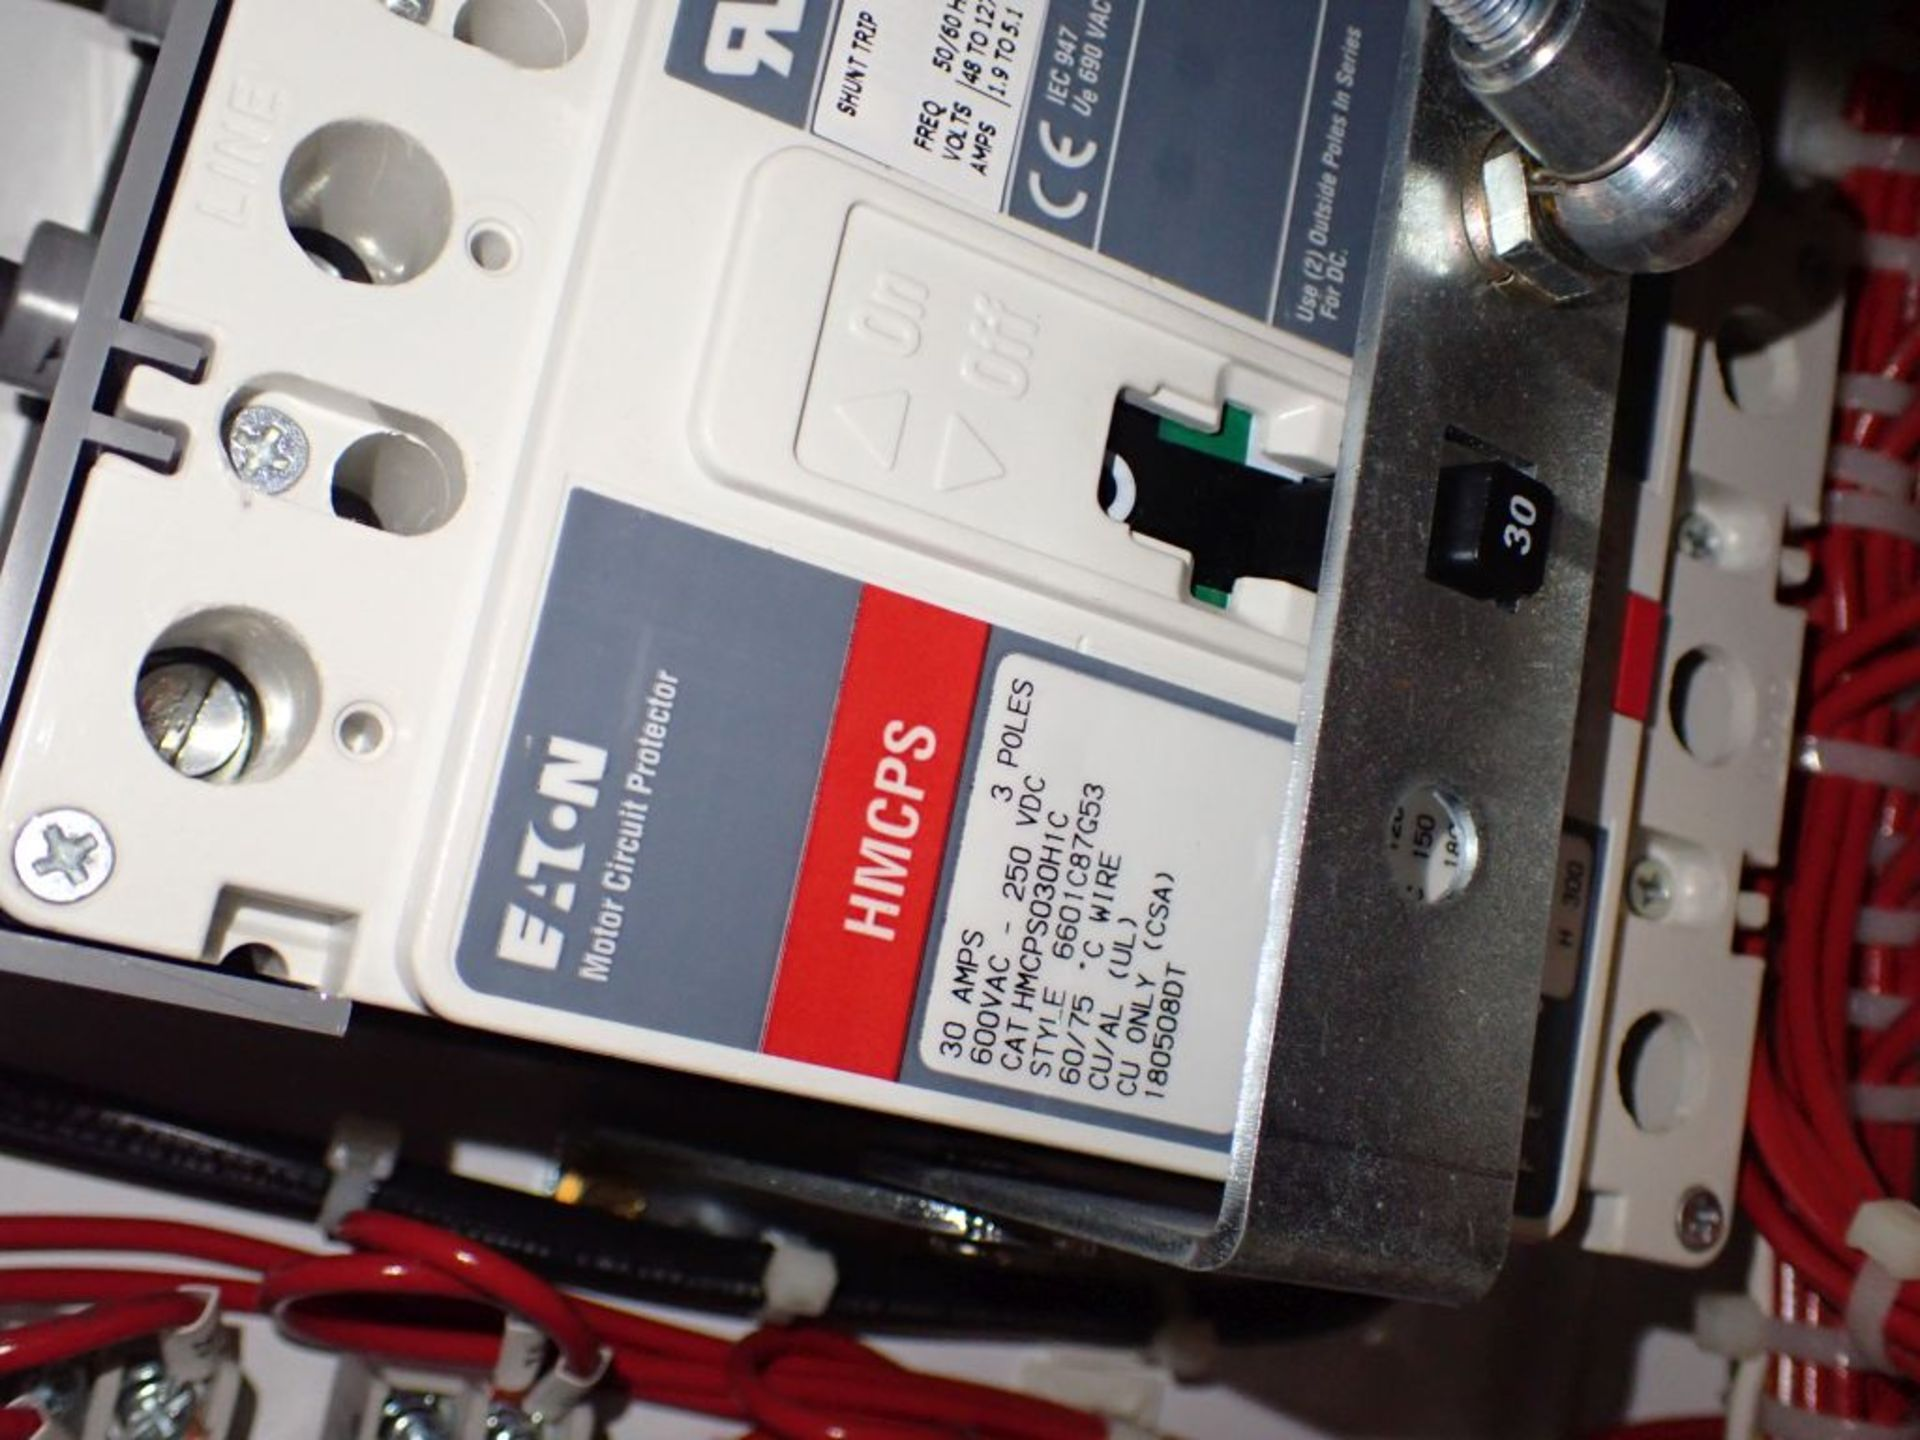 Eaton Freedom 2100 Series Motor Control Center | (11) F206-30A-10HP; (5) F206-15A-10HP; (1) SVX900- - Image 45 of 102